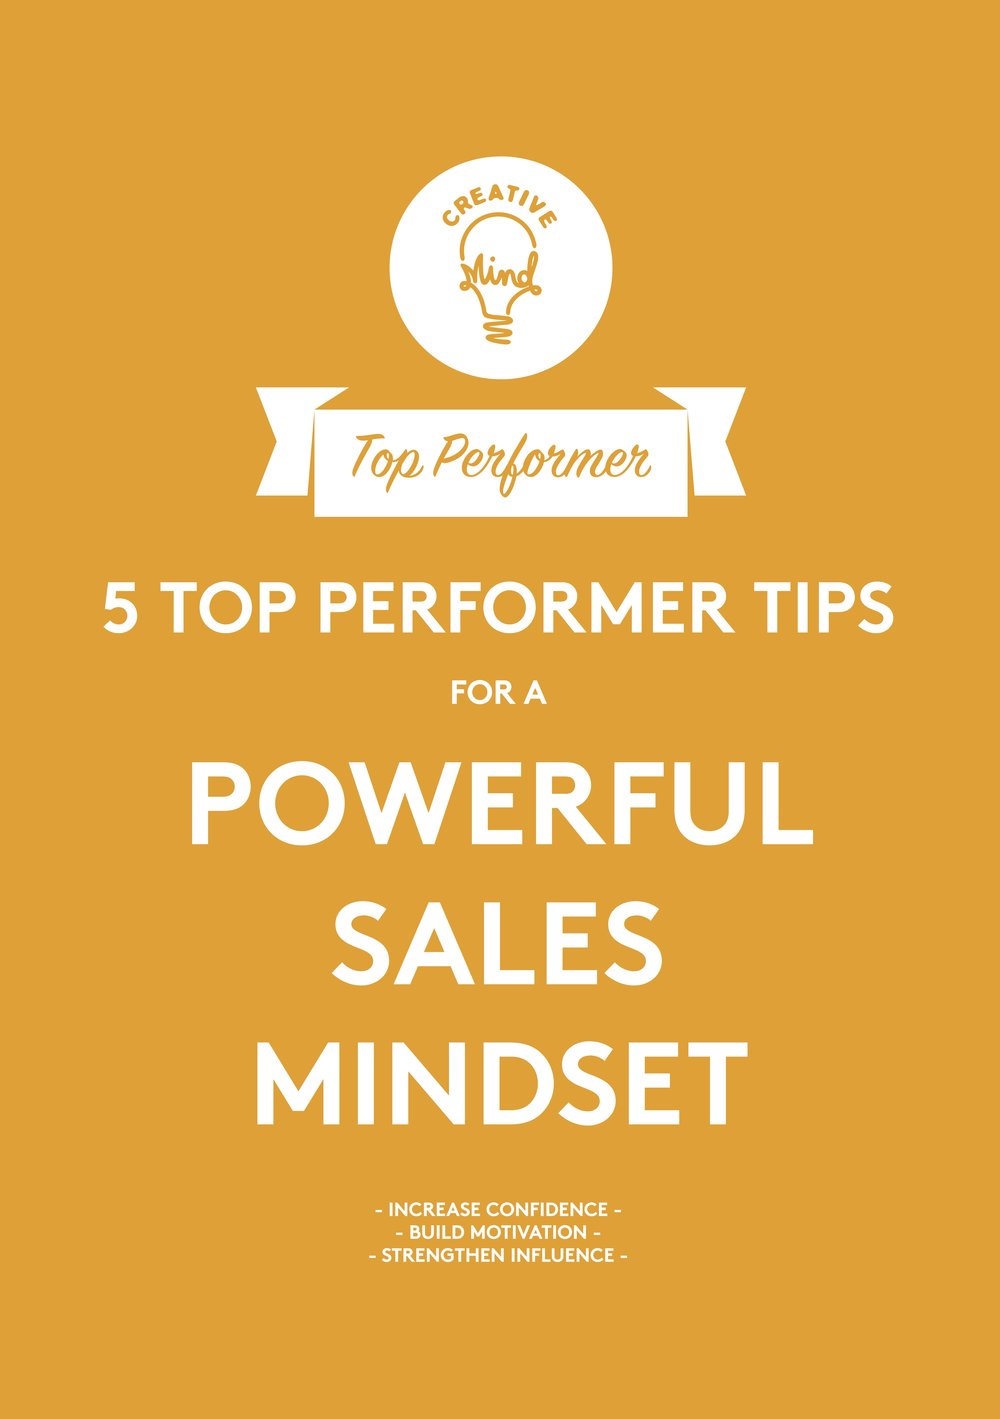 FREE DOWNLOAD: A powerful sales mindset - Increase confidenceBuild motivationStrengthen influence